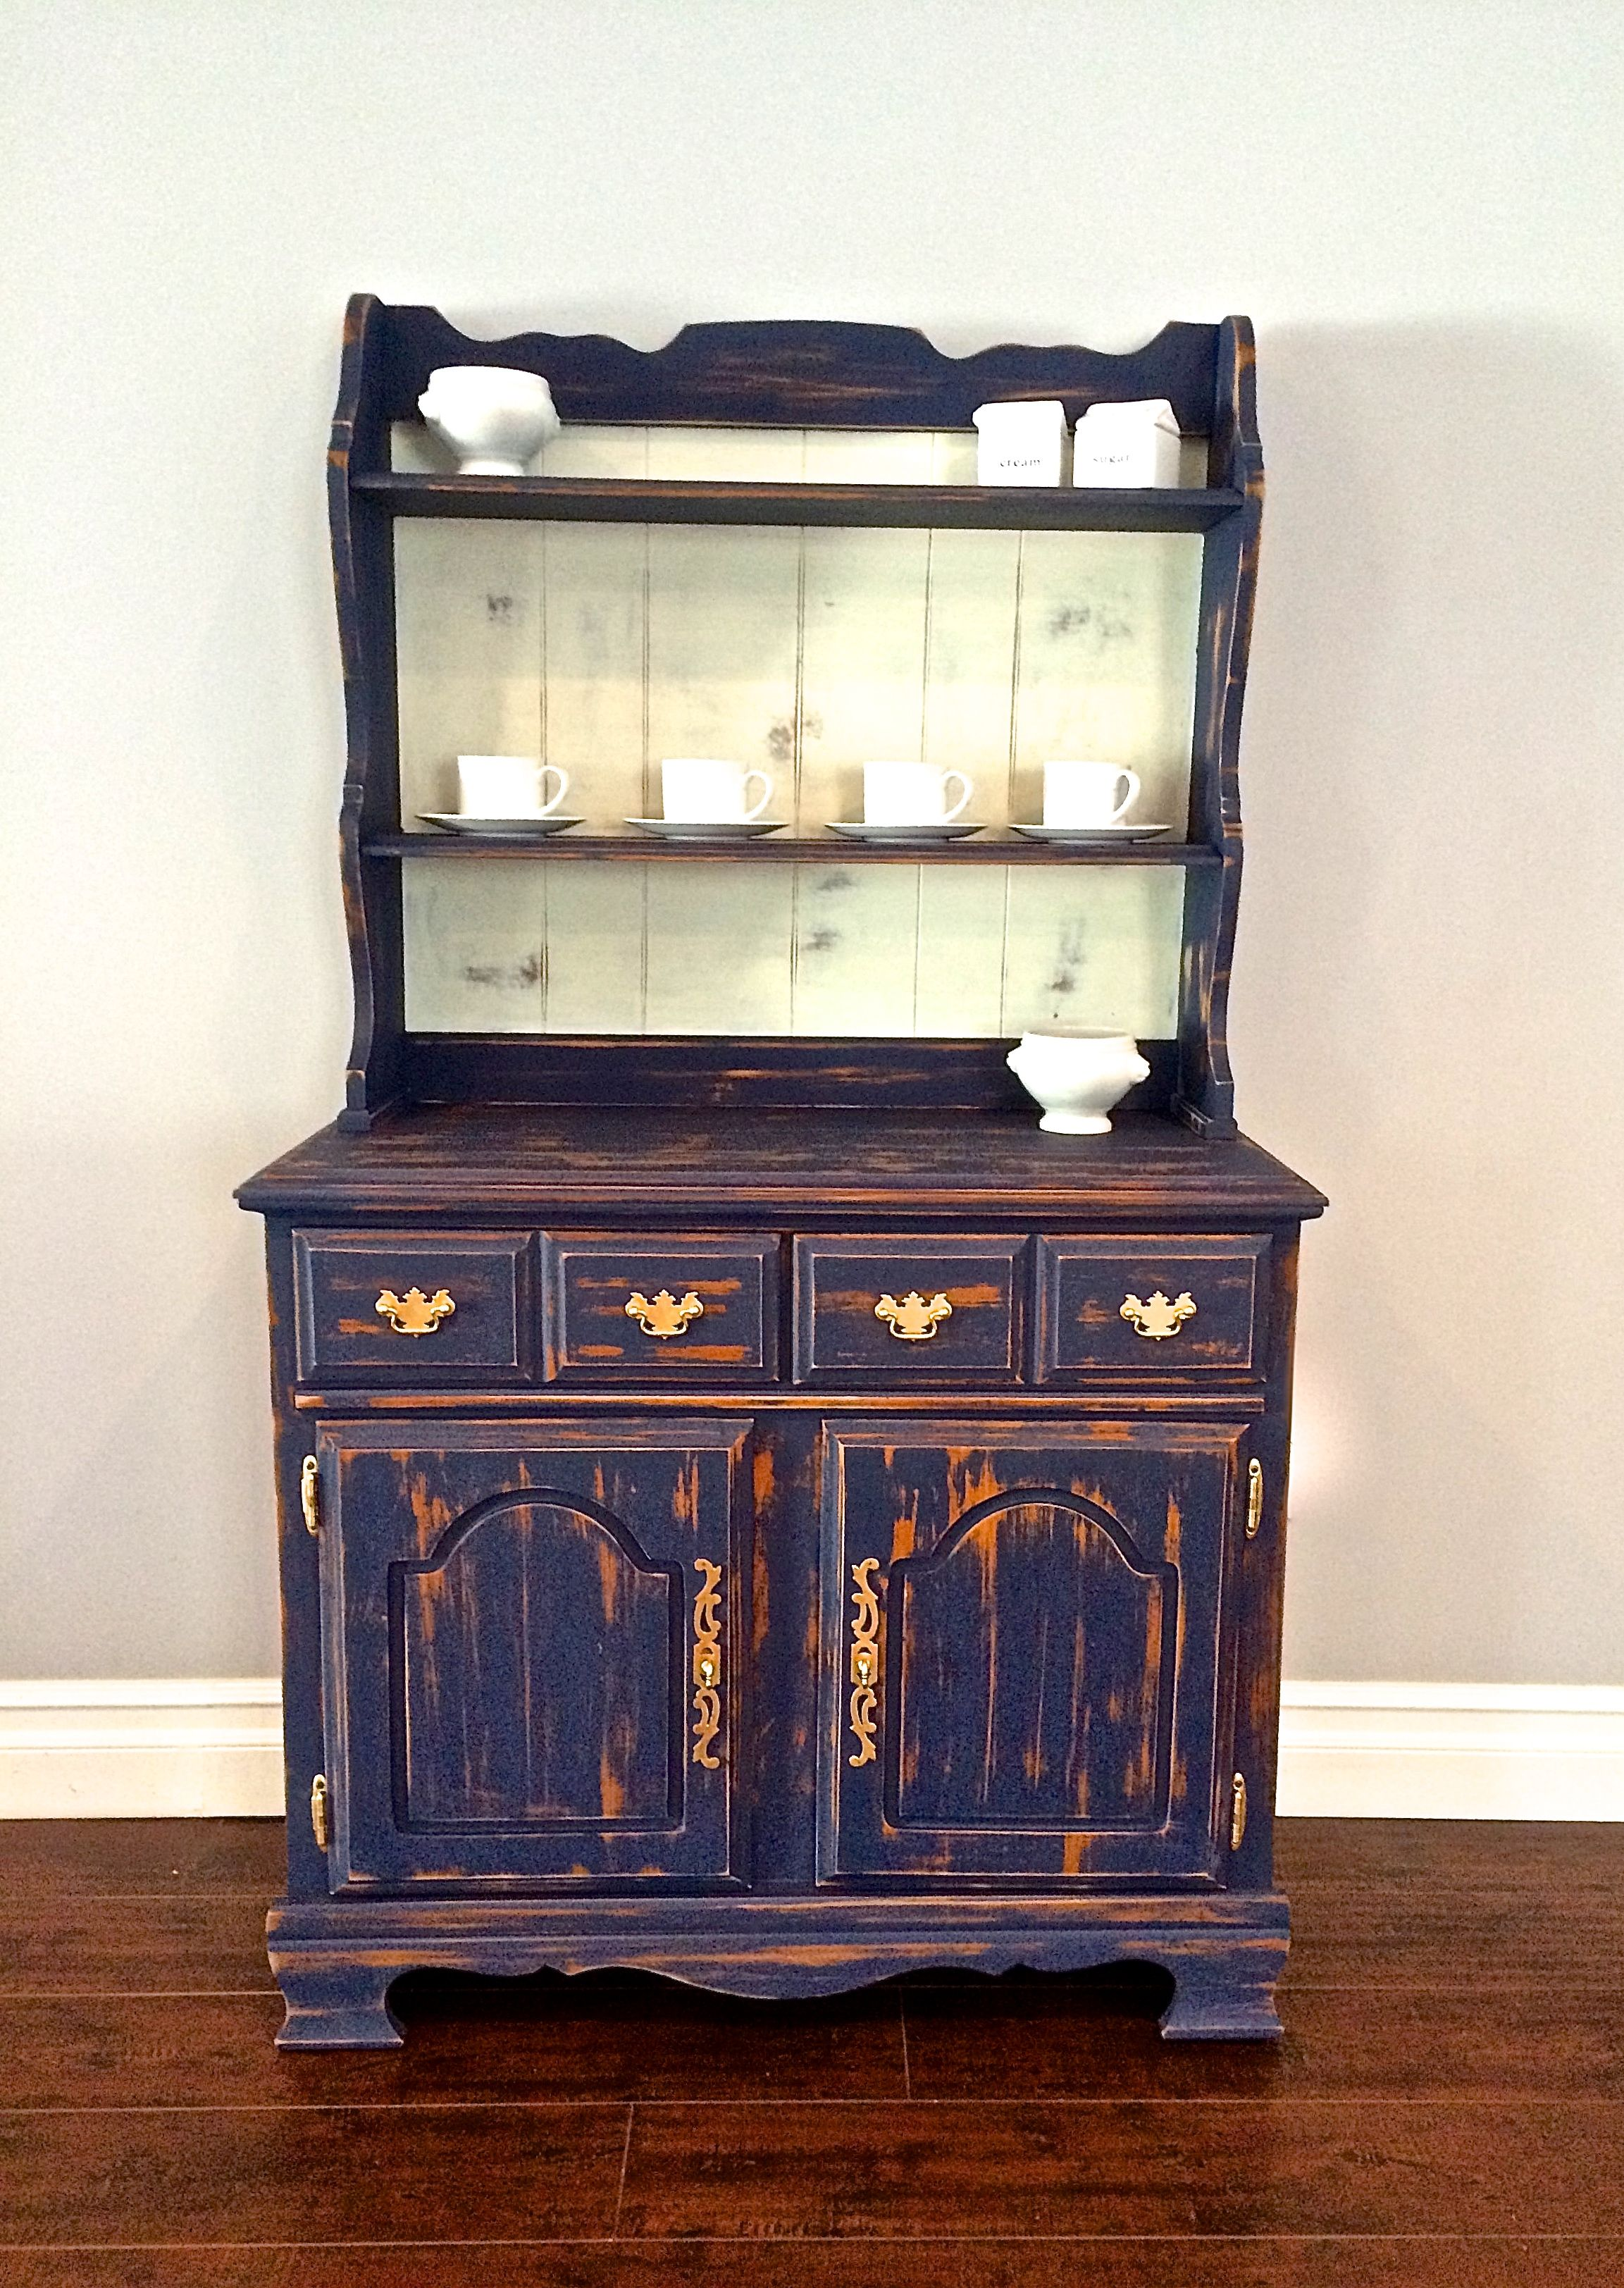 Blue shabby chic furniture - Shabby Chic Navy Blue White Gold Leaf Hutch 250 Sold